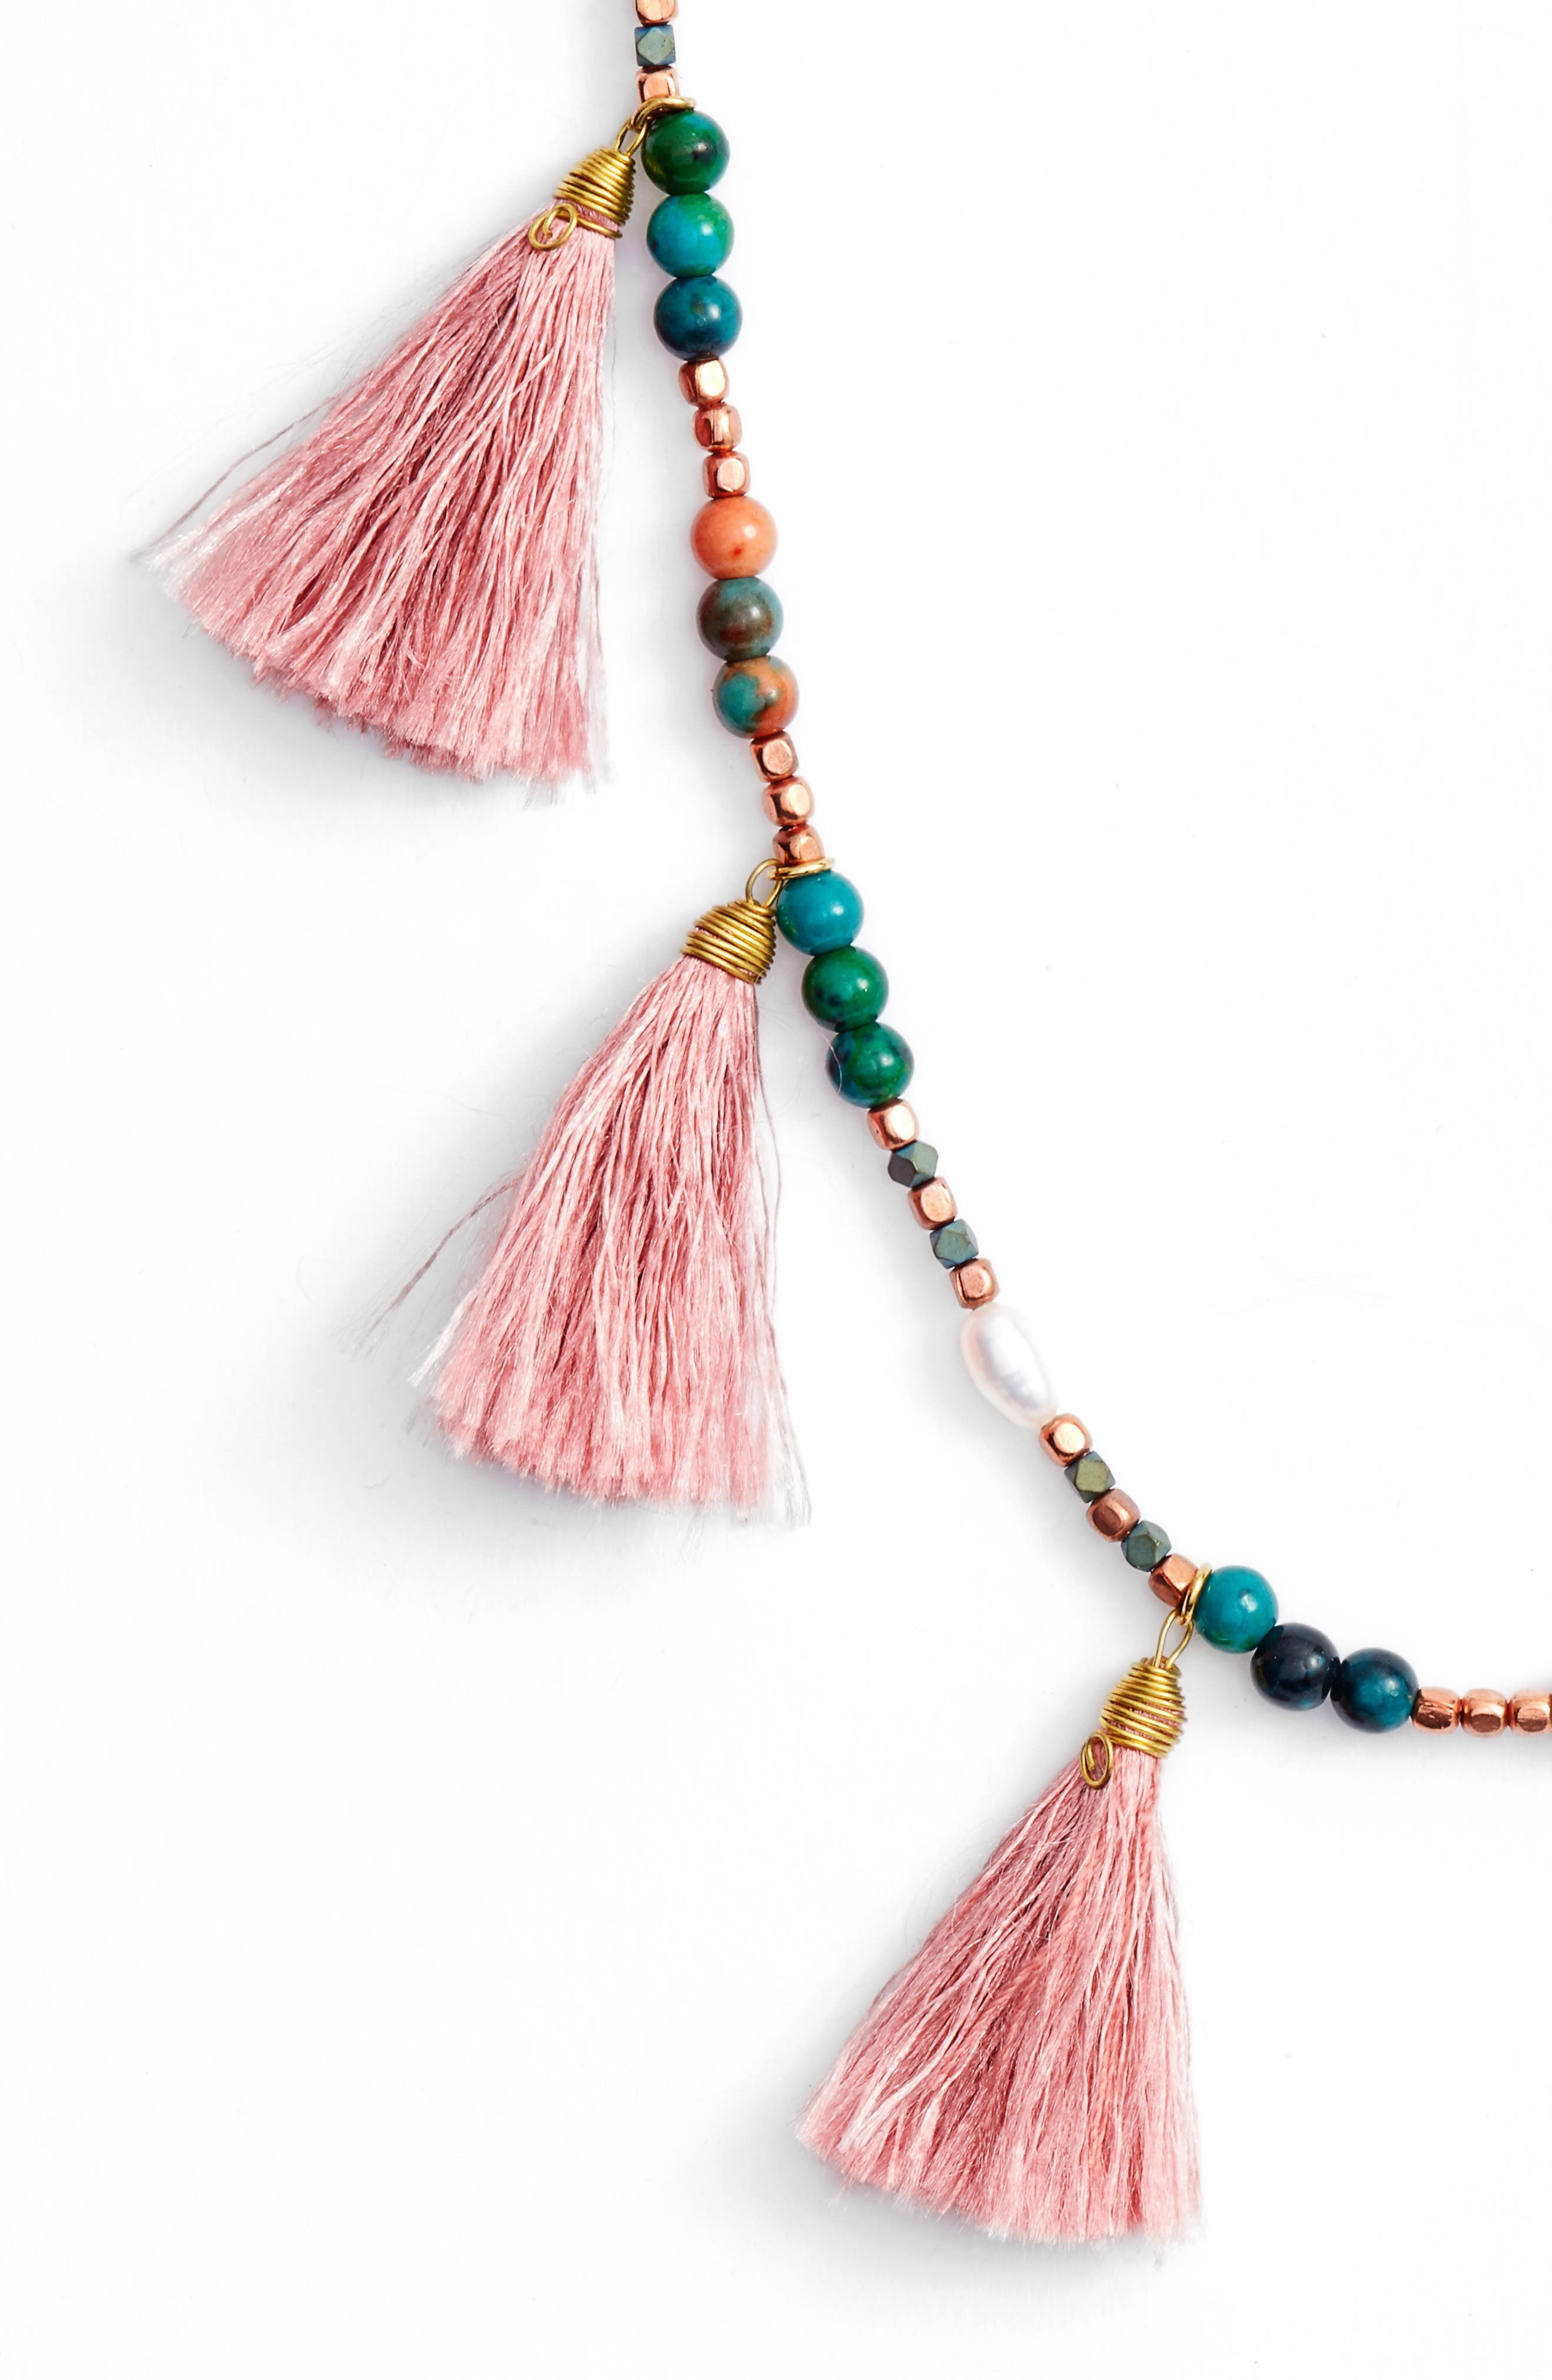 Tiny Tassel Beaded Necklace,                             Alternate thumbnail 2, color,                             Teal